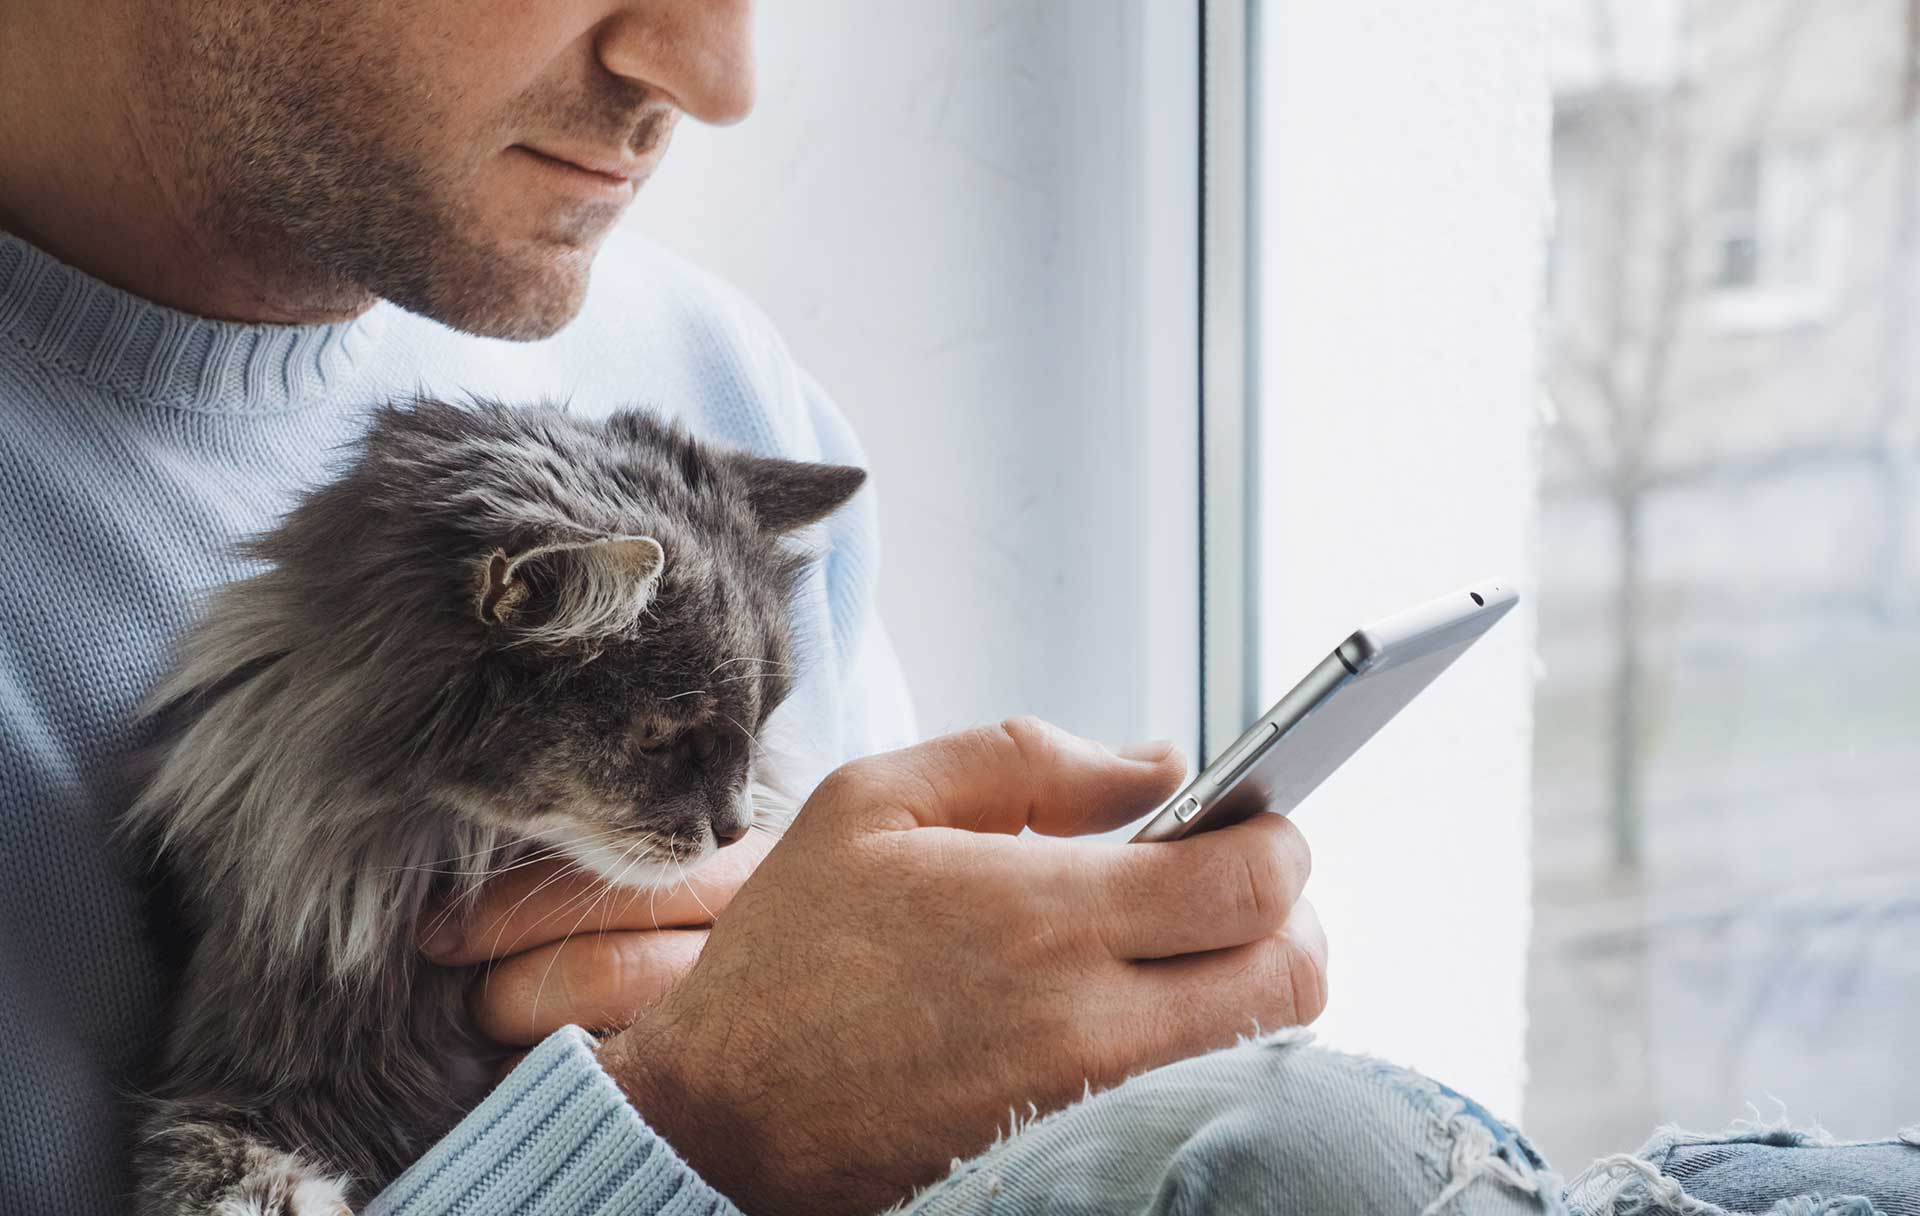 A man sits in a window looking at his smartphone. There is a grey, long-haired kitten in his arms.